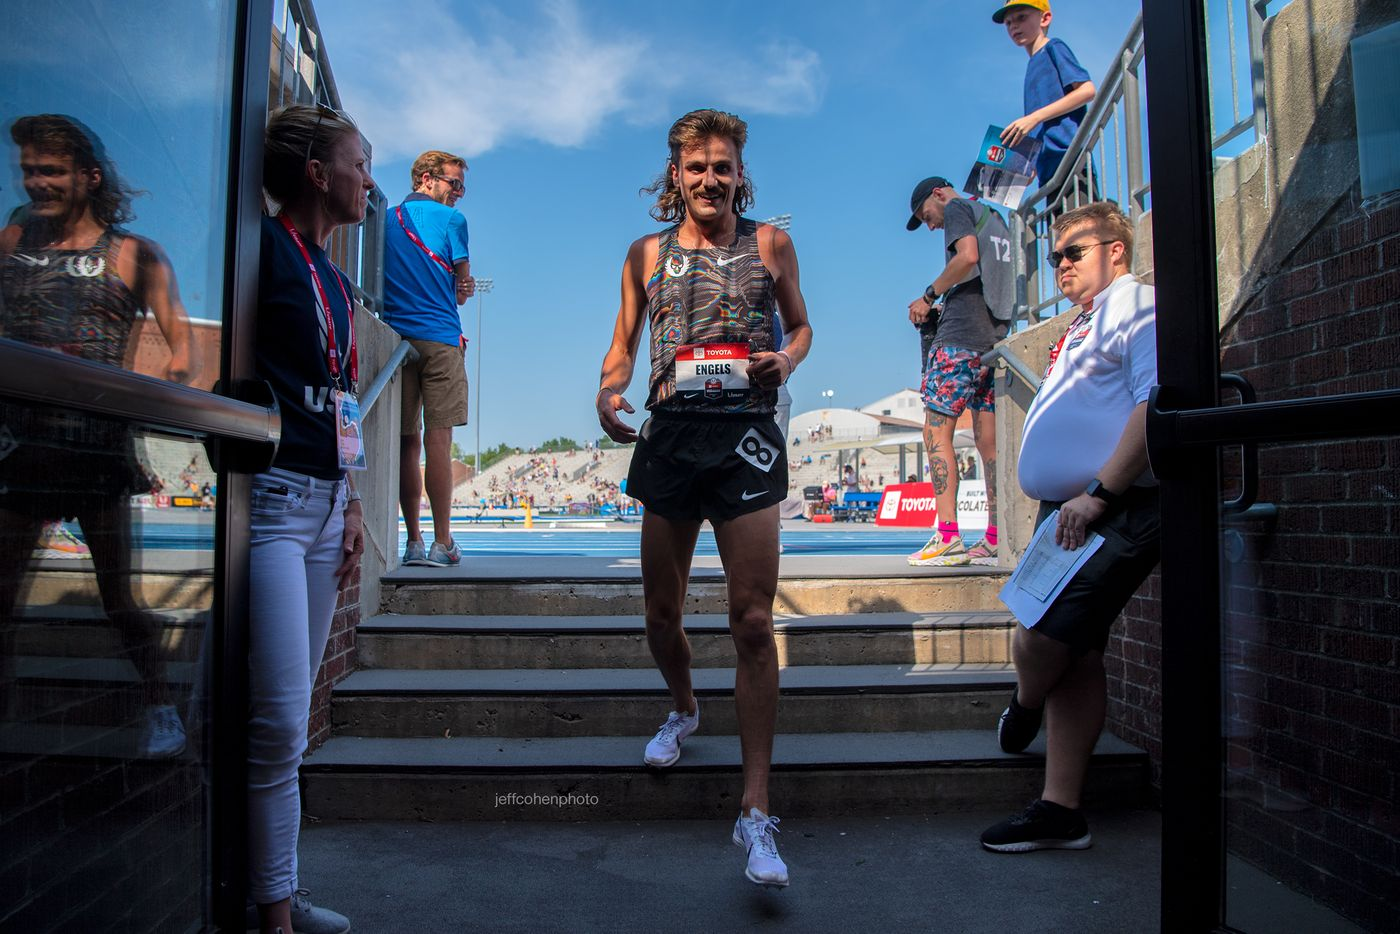 2019-USATF-Outdoor-Champs-day-2-engels-1500m--3738---jeff-cohen-photo--web.jpg